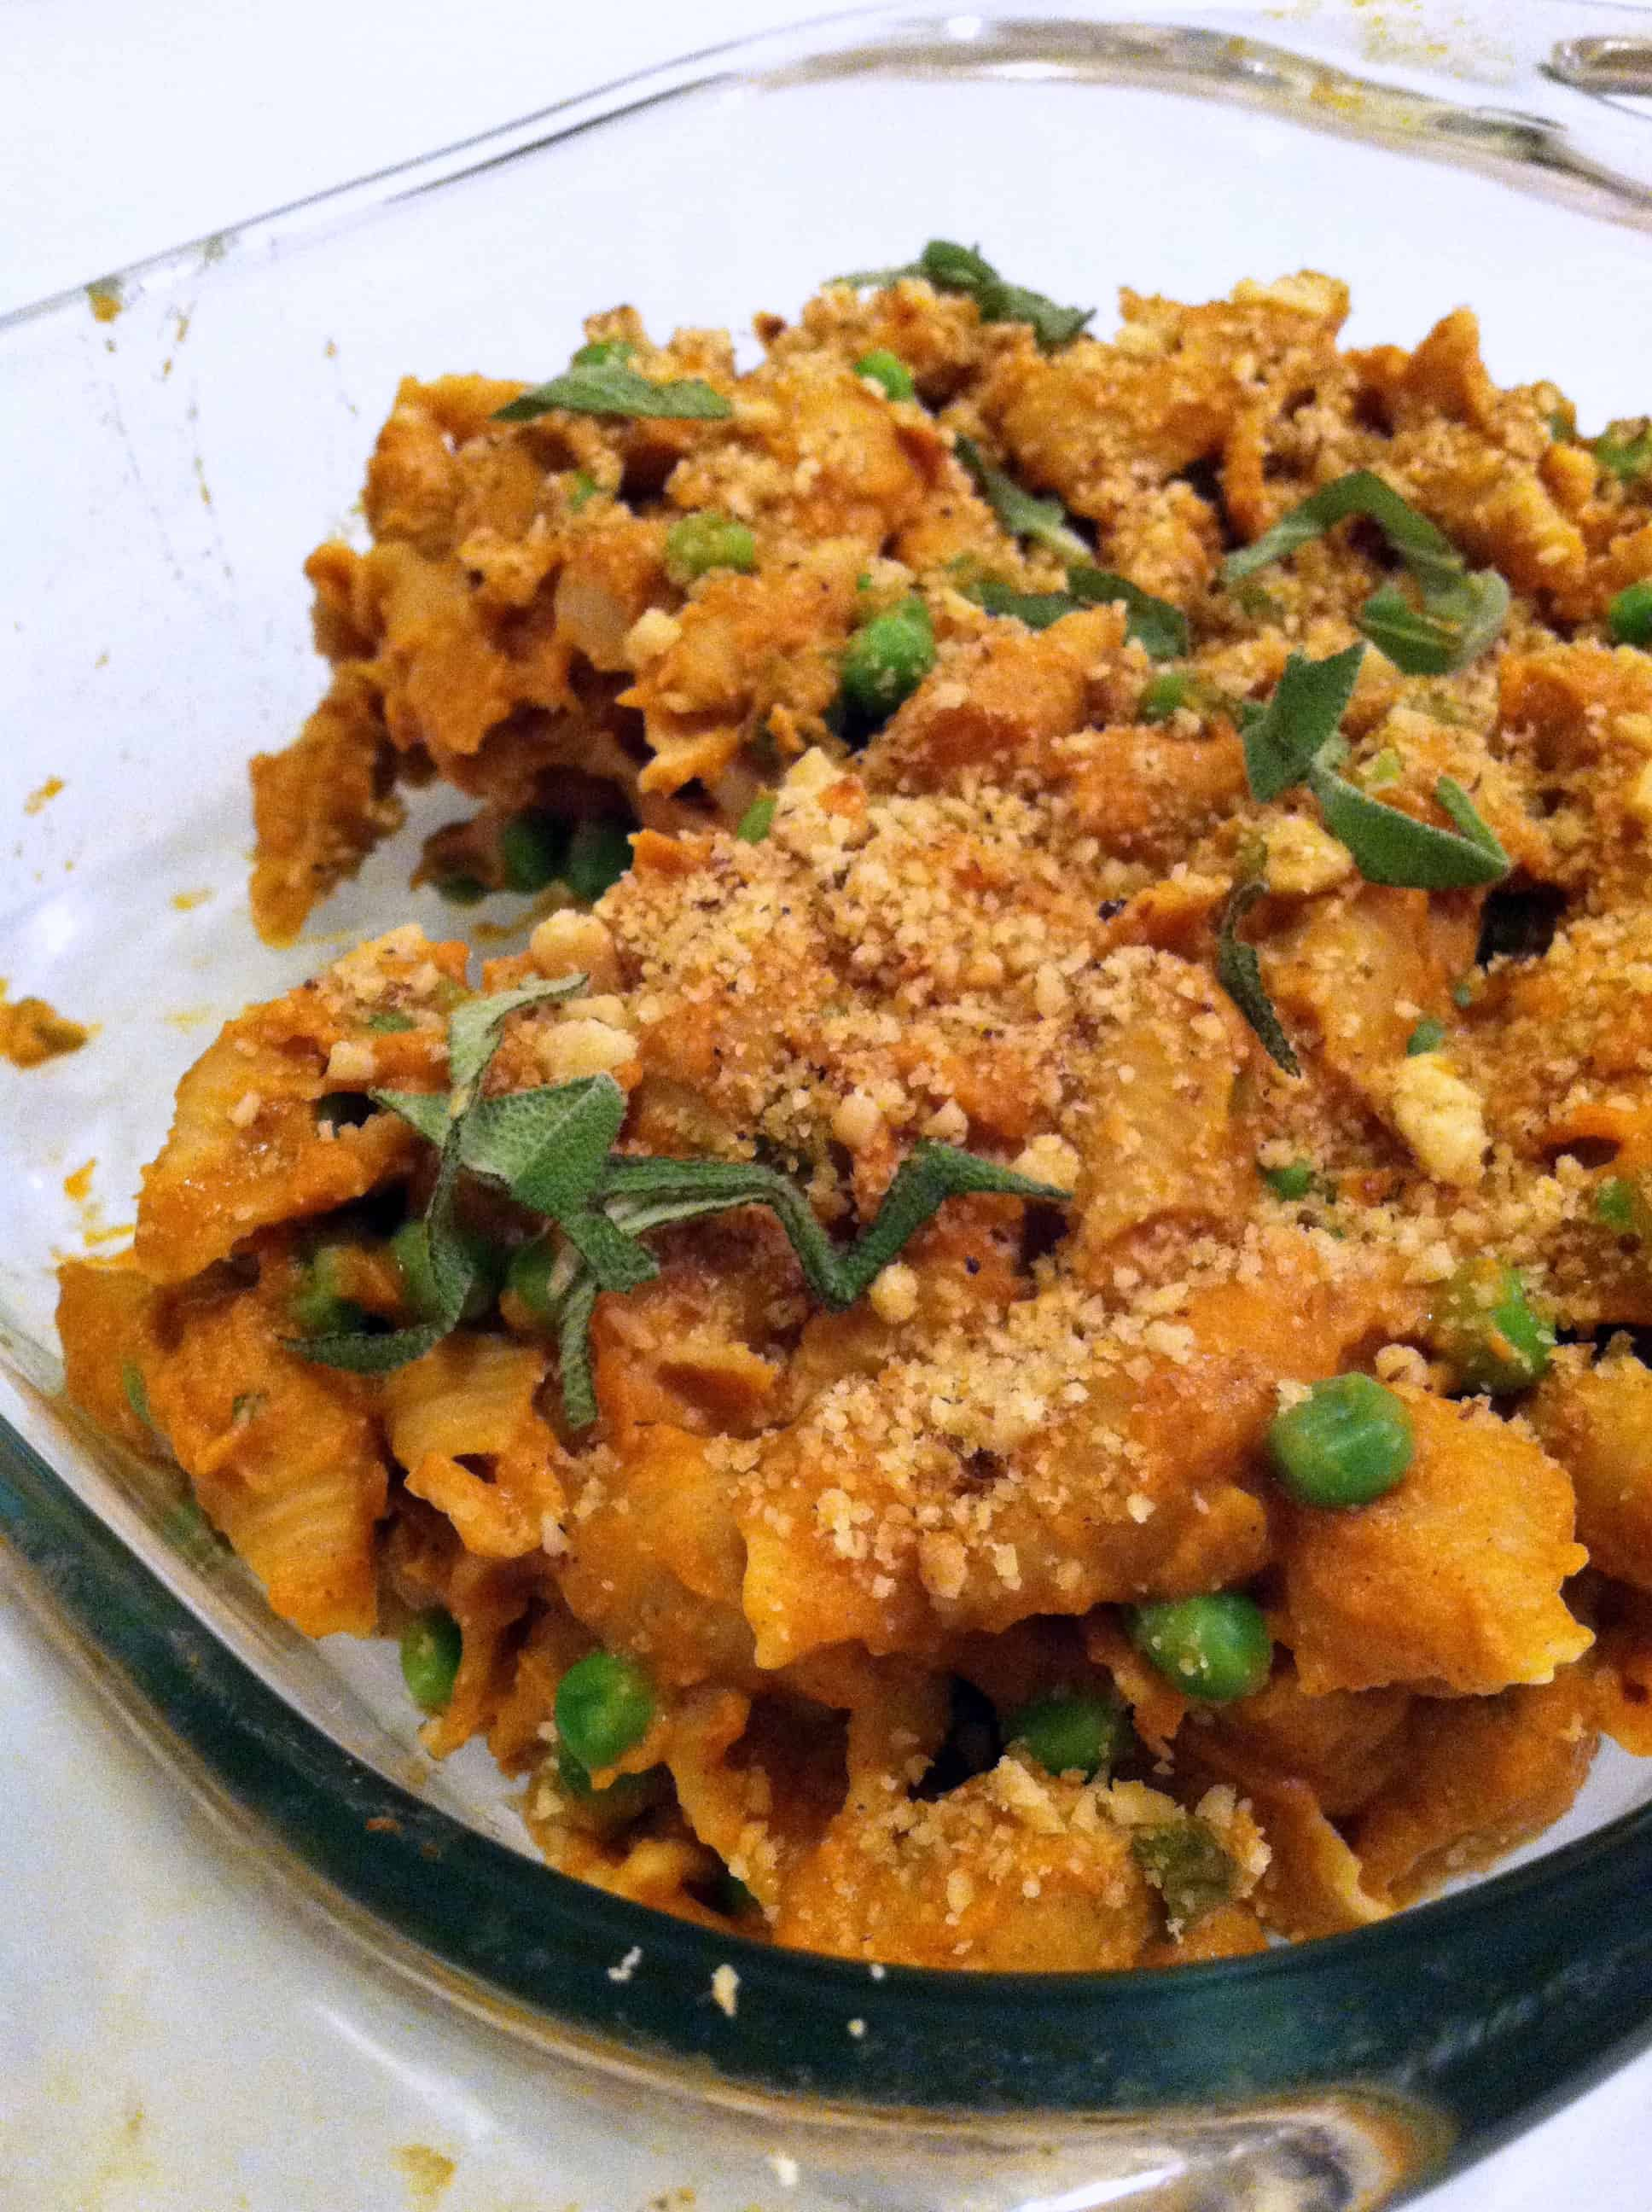 Creamy pumpkin pasta with peas and walnuts